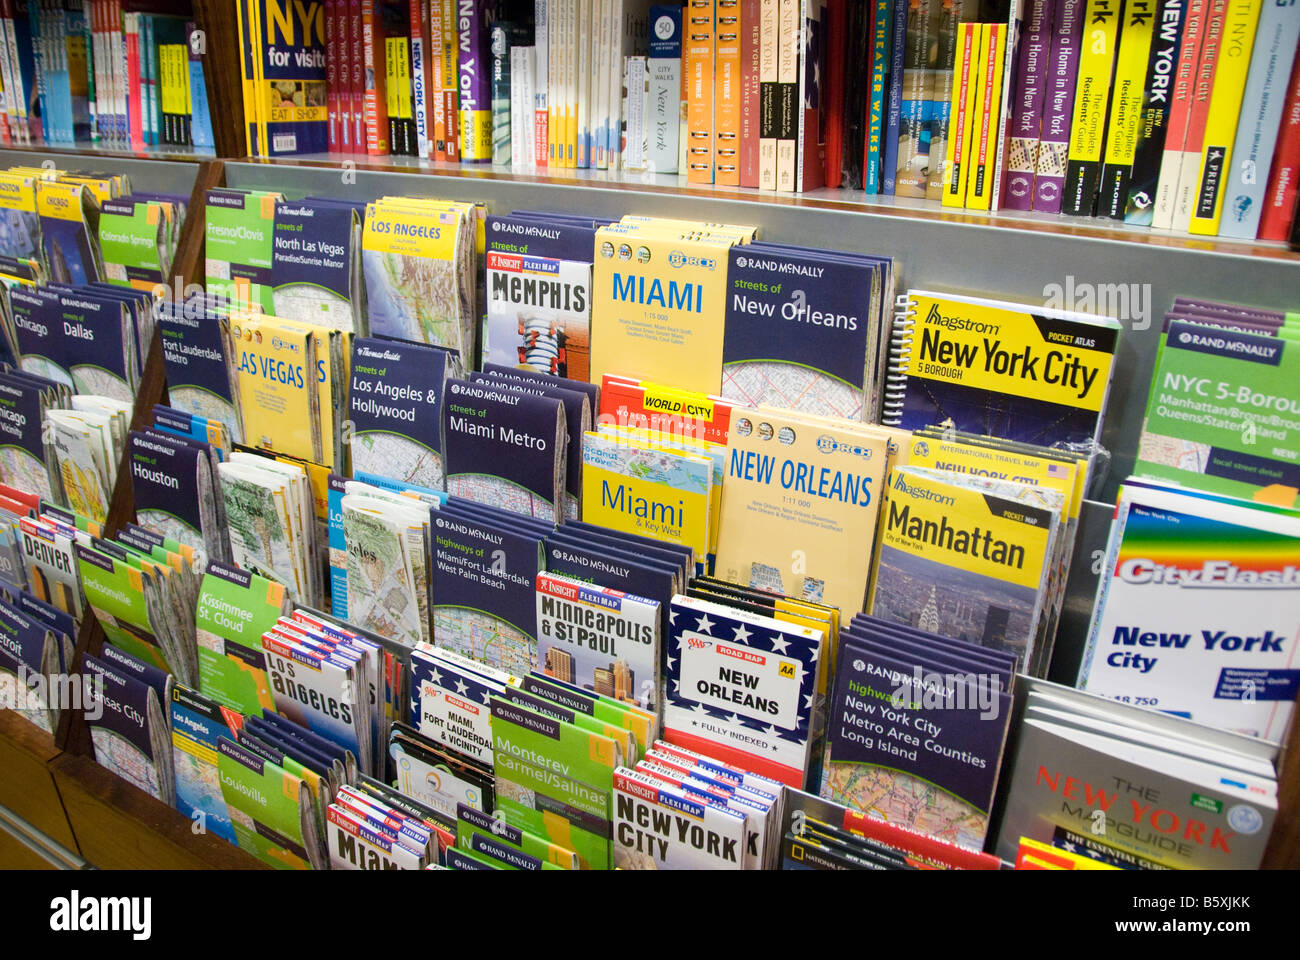 Maps of the USA for sale in a shop Stock Photo: 20869063 - Alamy